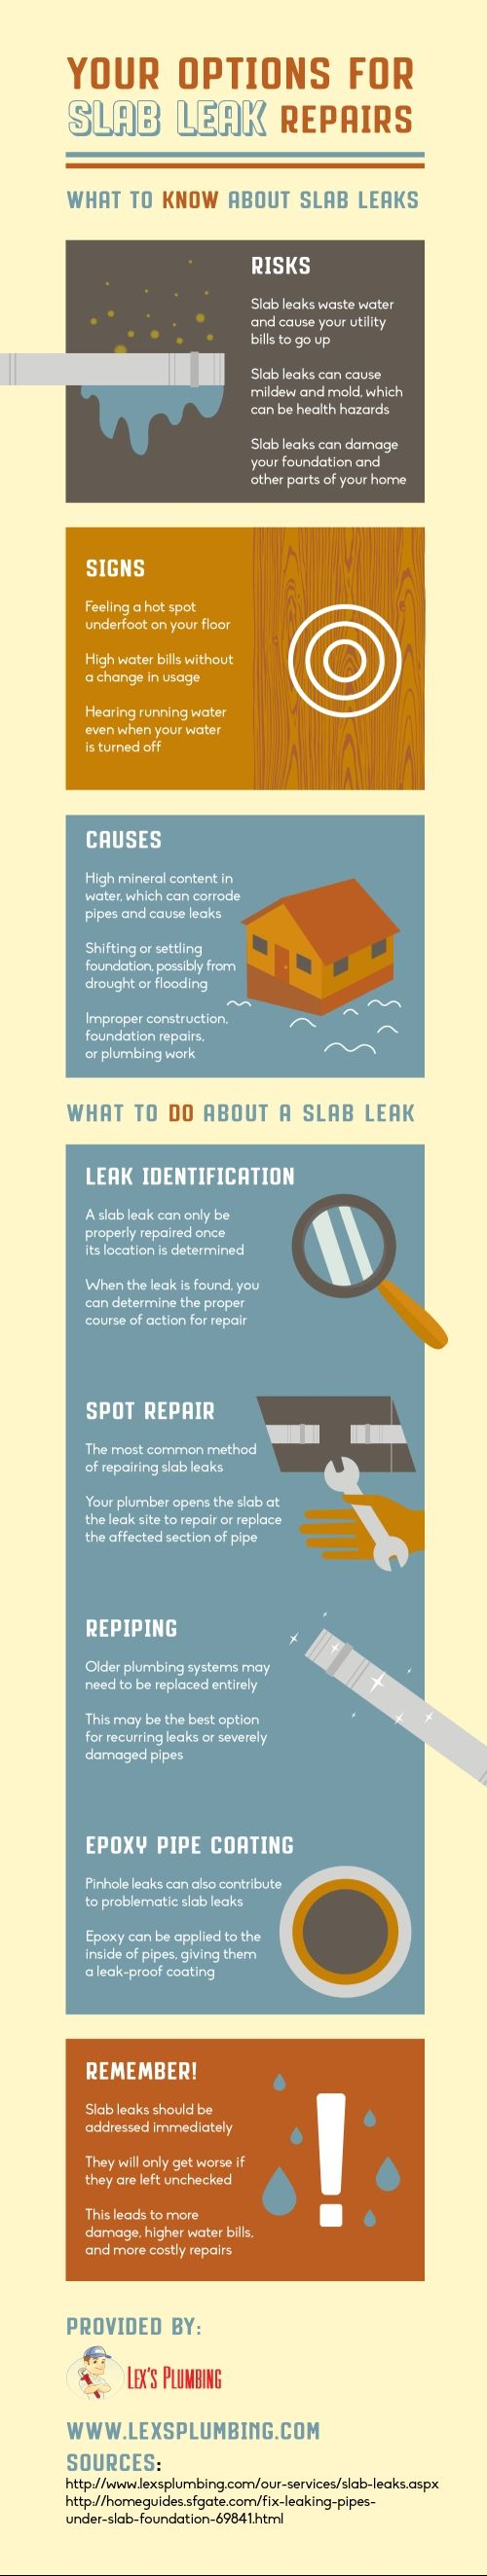 Spot repair, repiping, and epoxy pipe coating are all feasible solutions for a slab leak. Look at this infographic to learn about your options for slab leak repair. #infographic #datavisualization #slab #leak